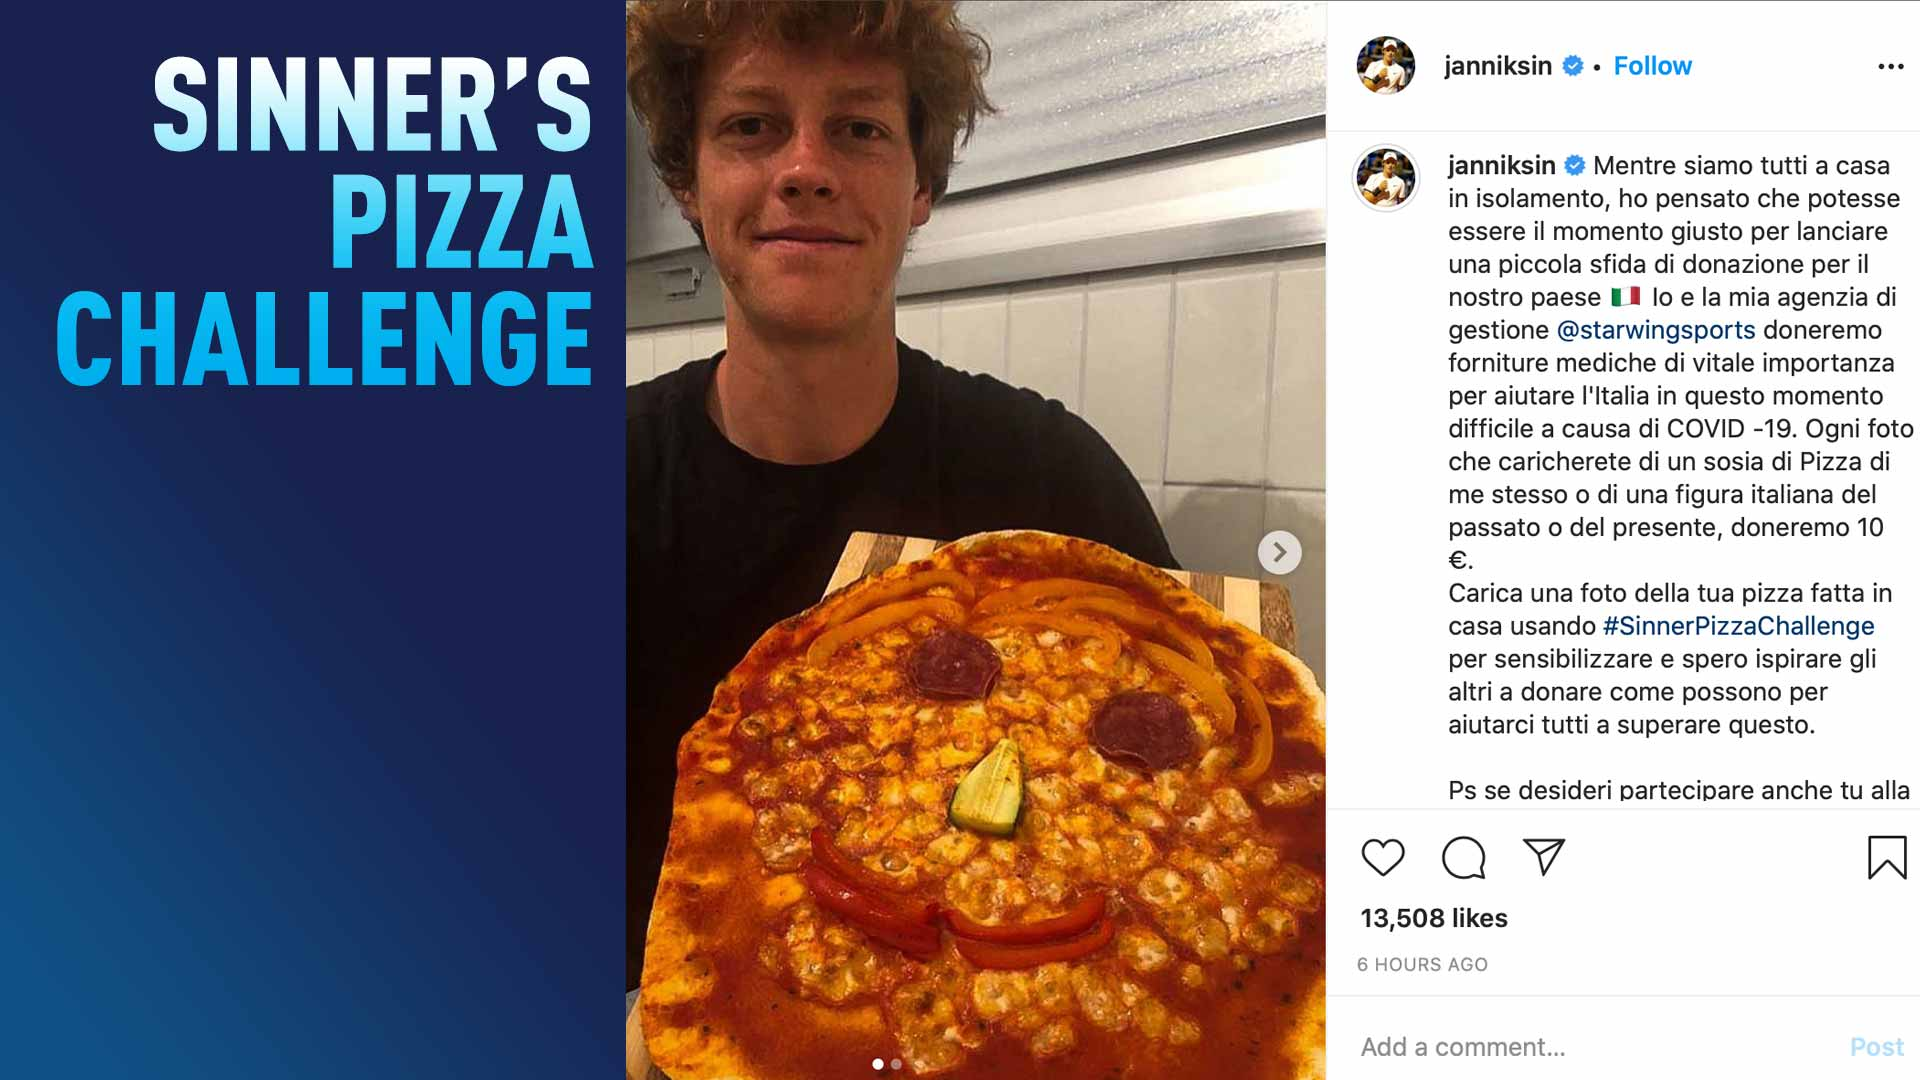 Alongside his management company Starwing Sports, <a href='https://www.atptour.com/en/players/jannik-sinner/s0ag/overview'>Jannik Sinner</a> pledges to donate €10 for every #SinnerPizzaChallenge post on Instagram.